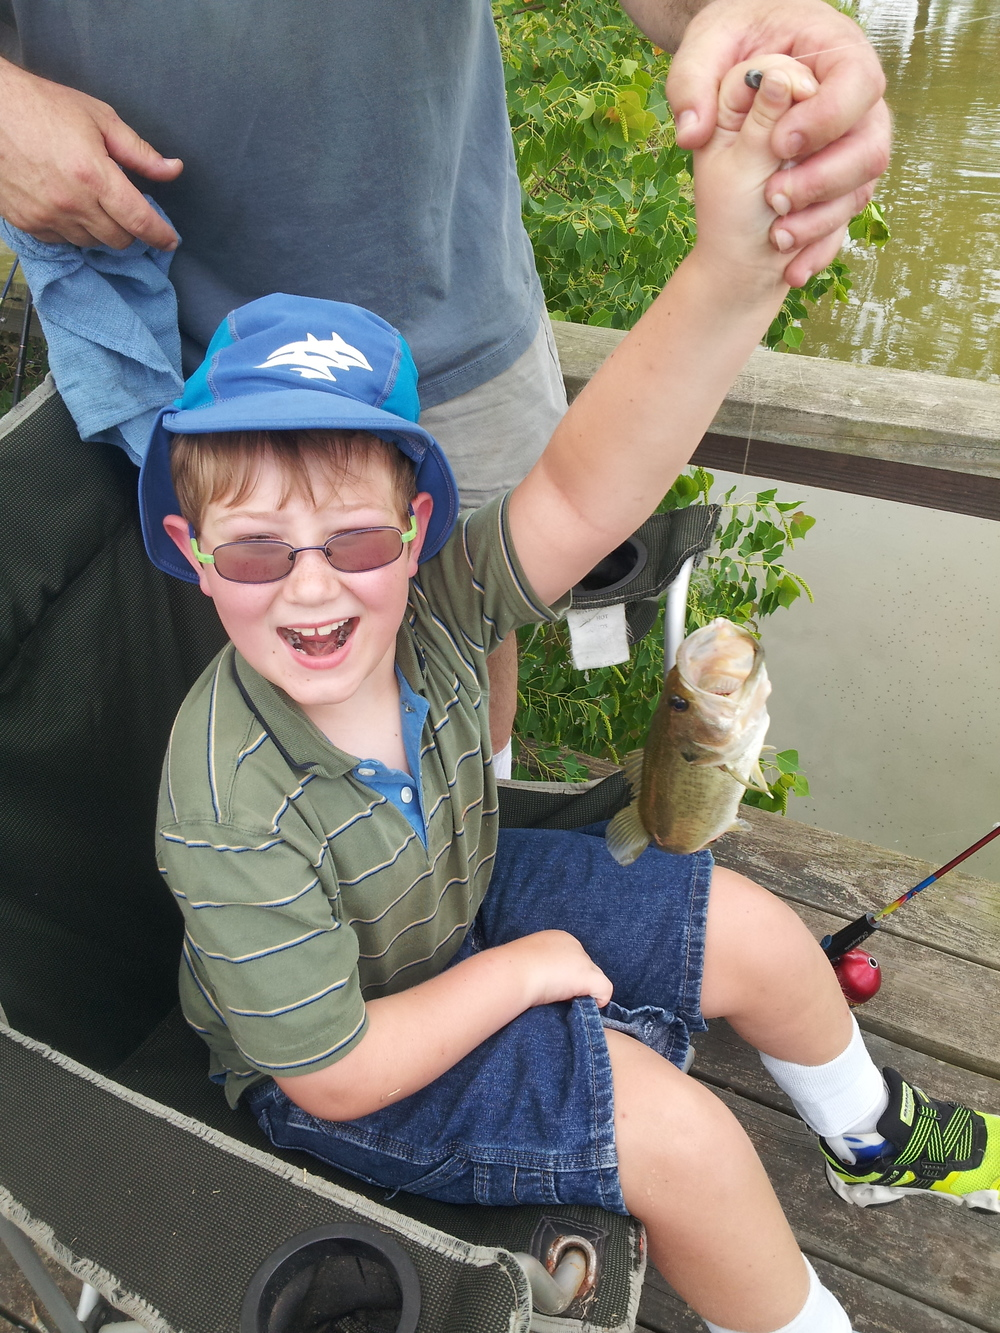 Check out Nicholas's fish he reeled in